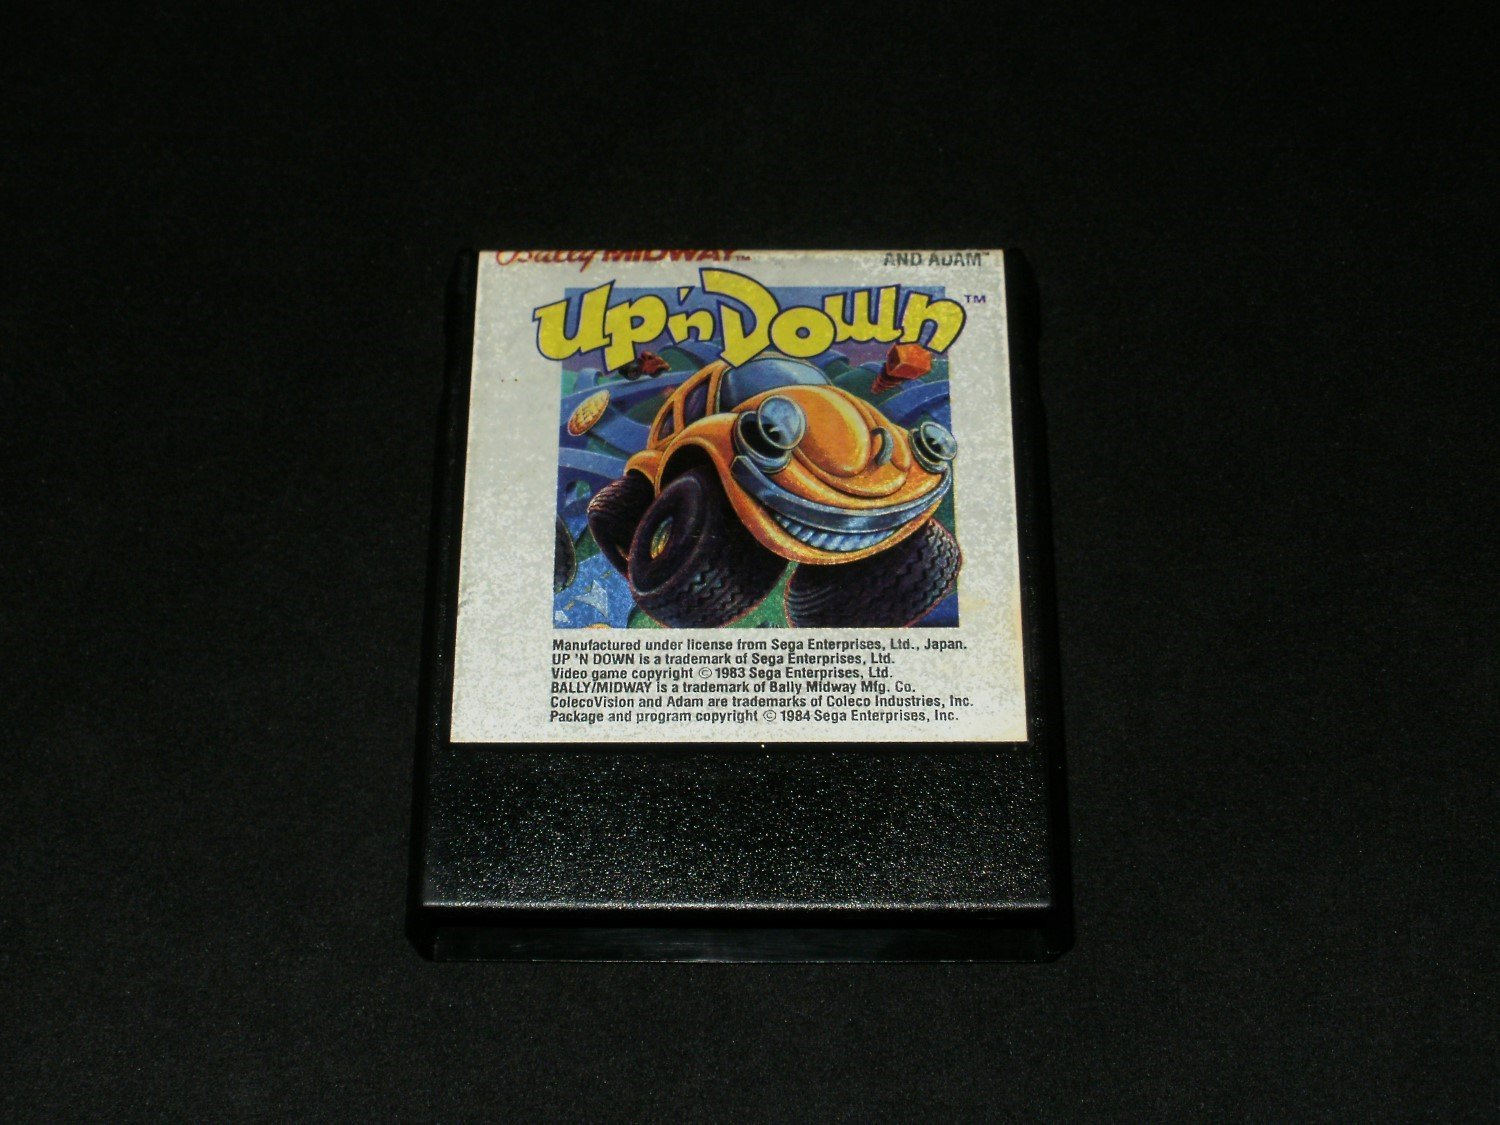 Up N Down - Colecovision - Rare